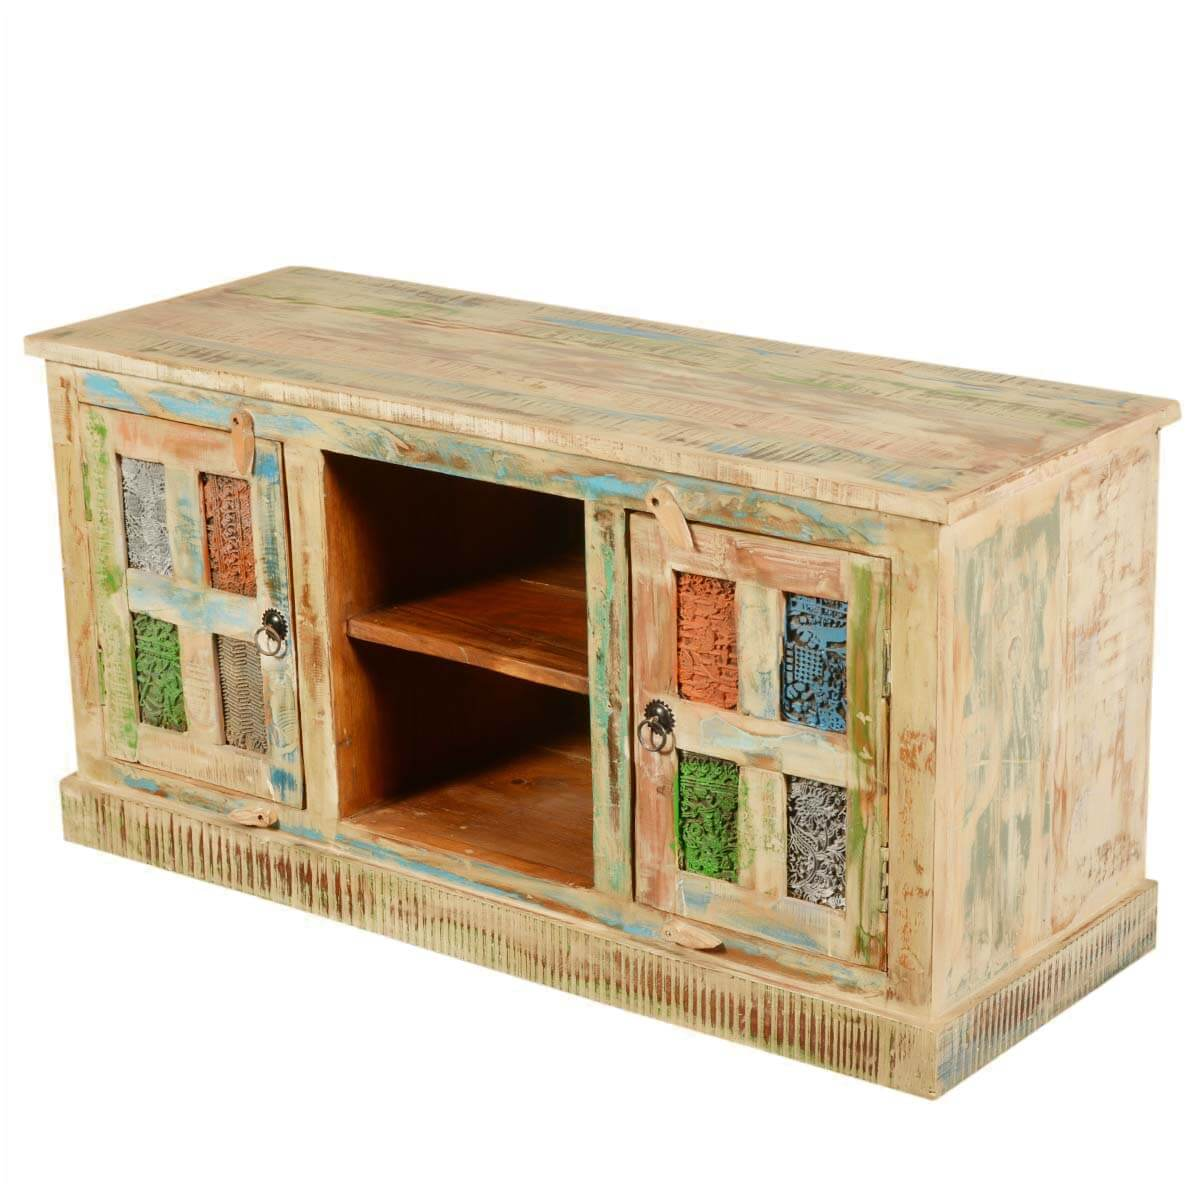 Rainbow Windows Rustic Reclaimed Wood TV Stand Media Console